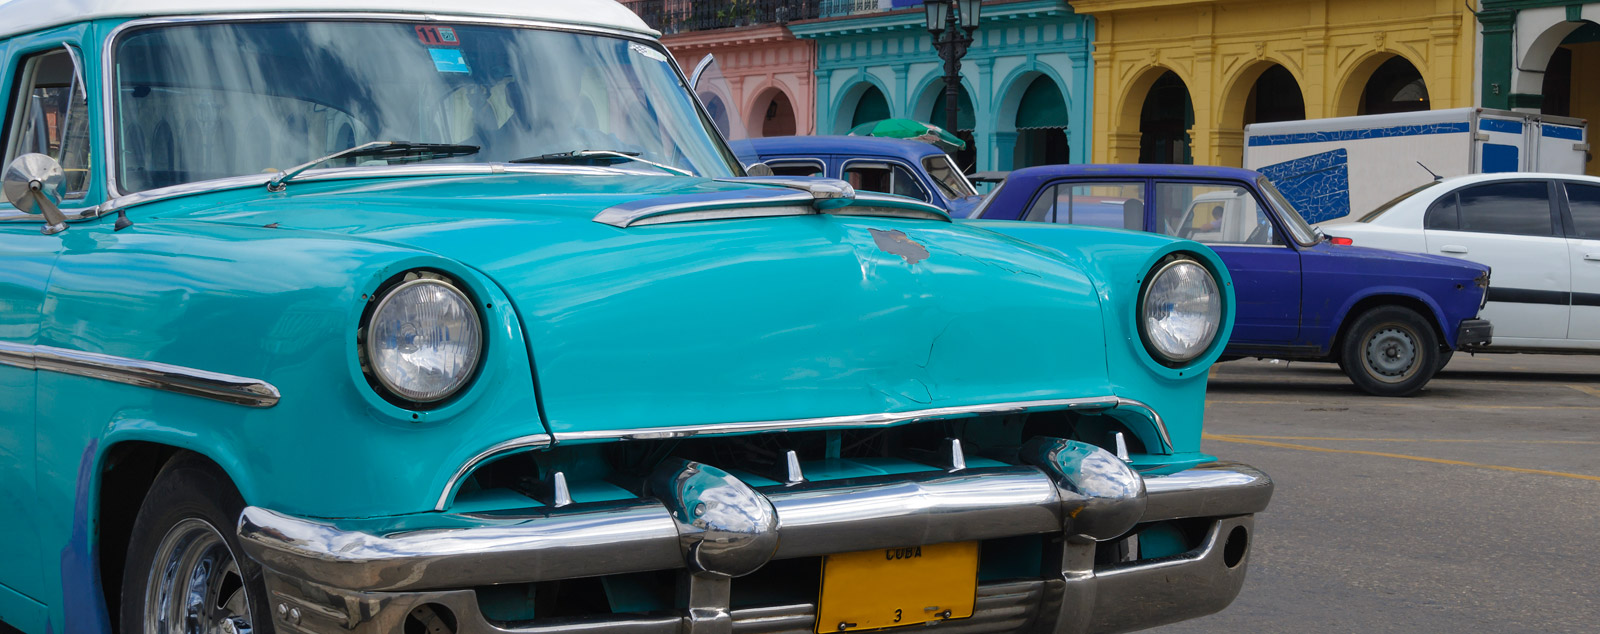 A vintage teal car with circular headlights in the foreground with colourful colourful colonial buildings behind it.